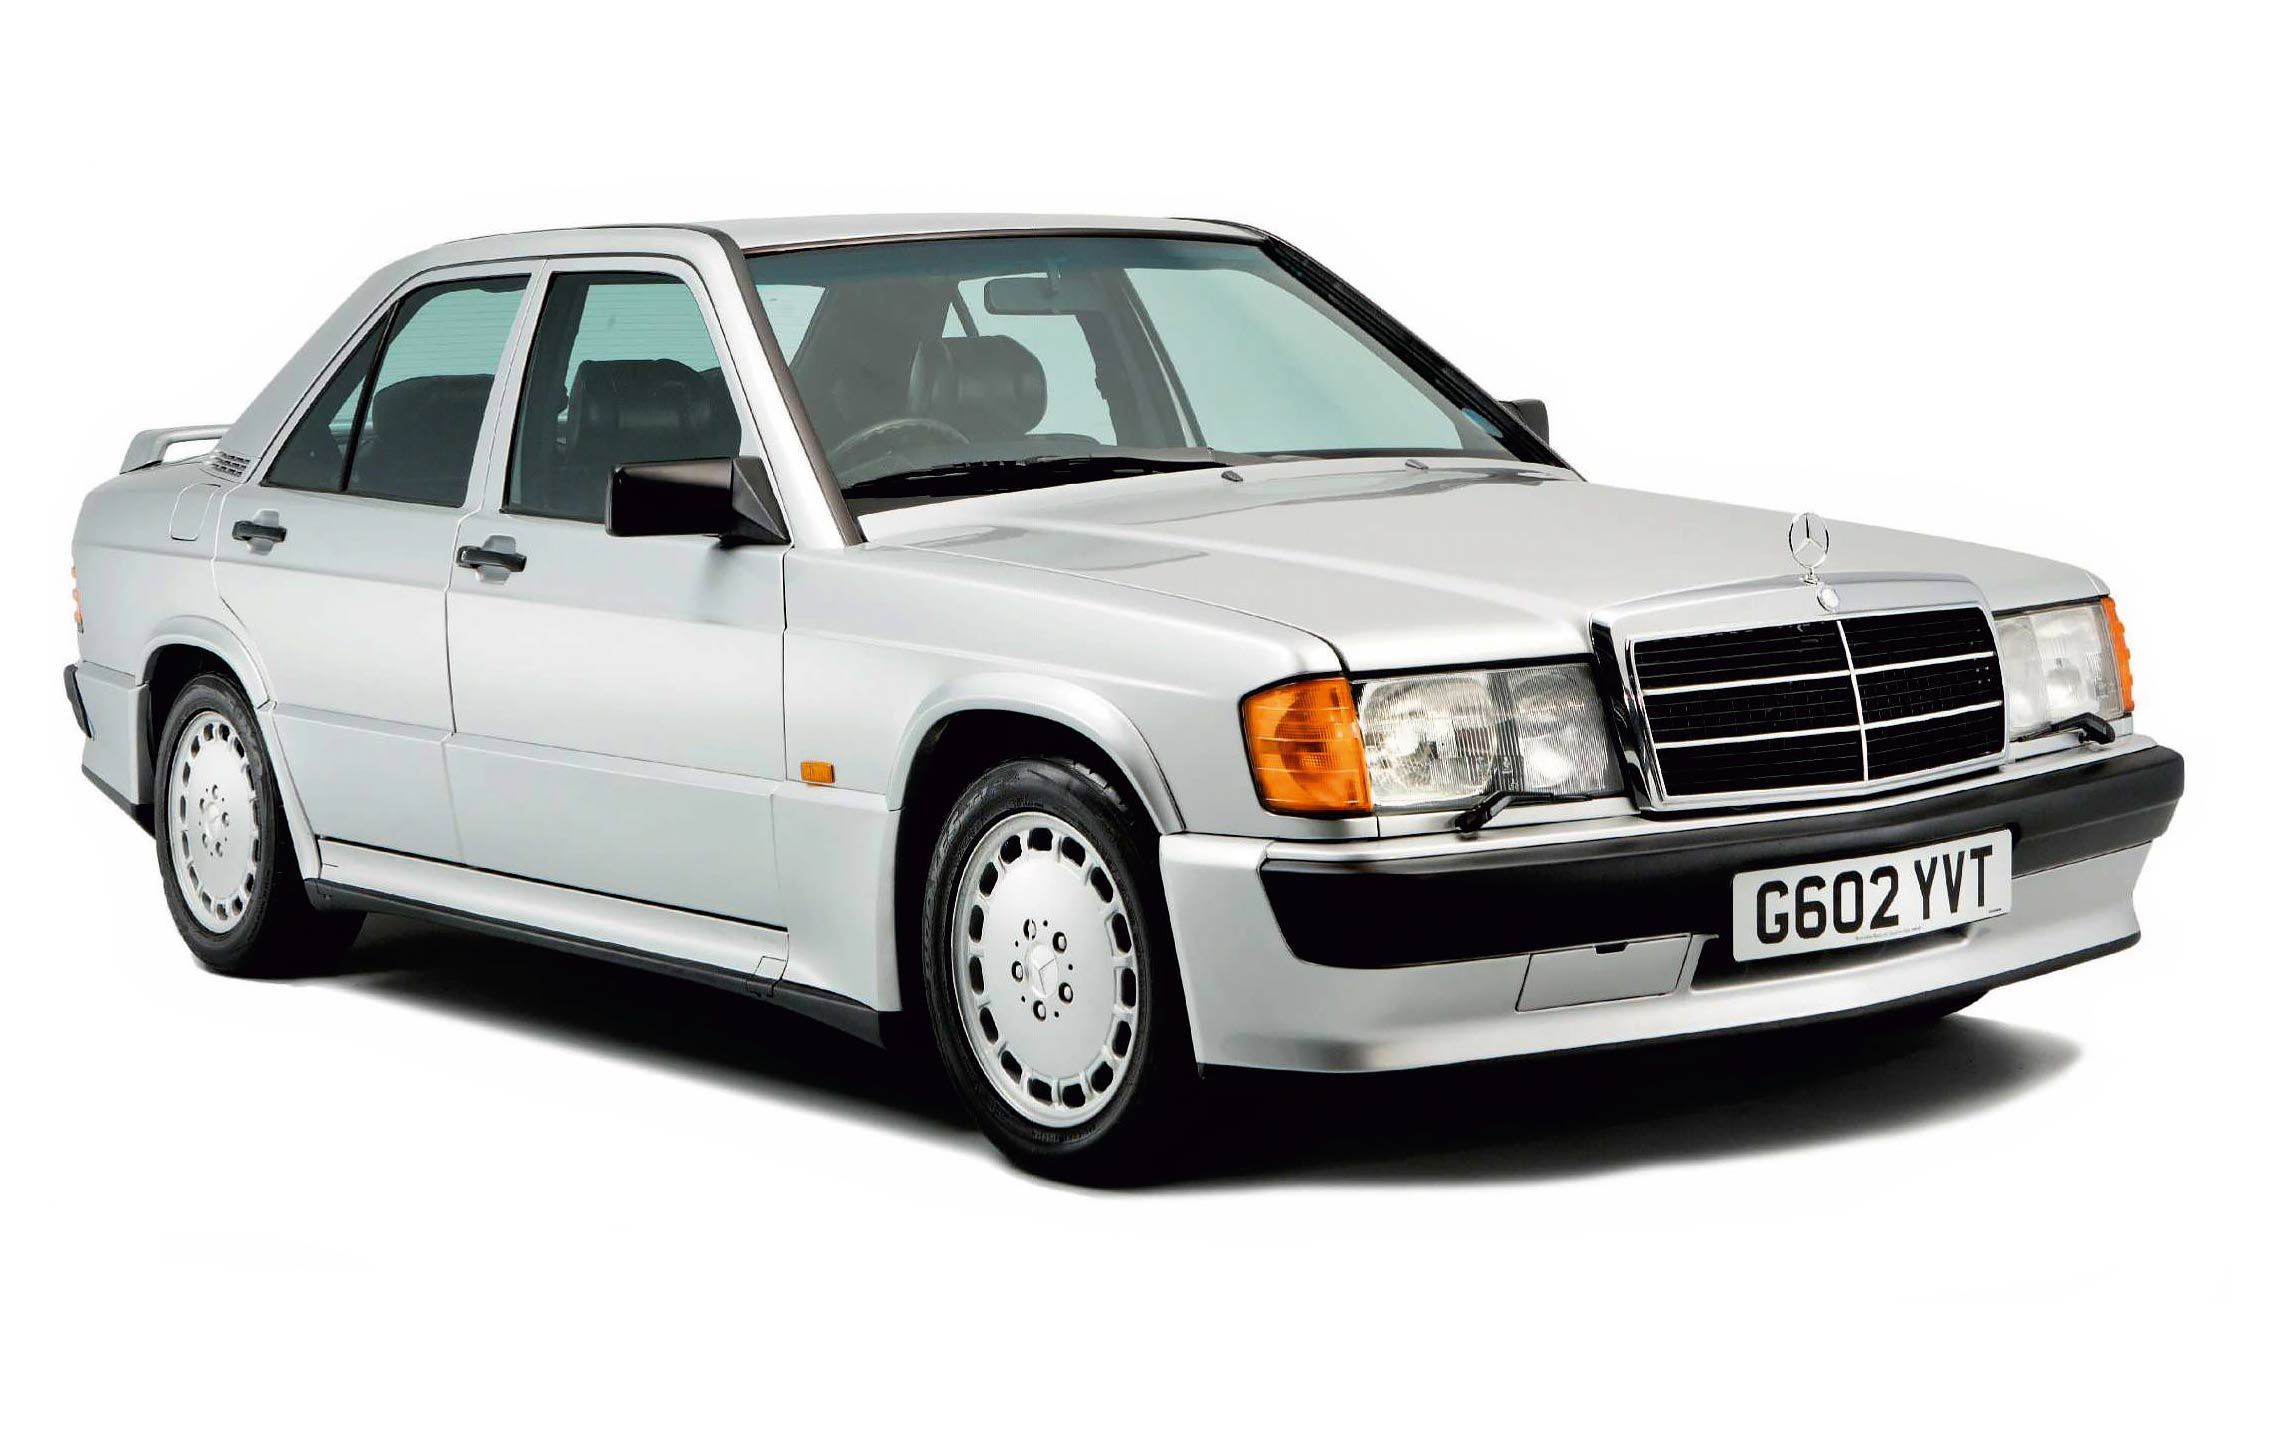 Buying Guide Mercedes-Benz 190E 16v Cosworth W201 - Drive-My Blogs